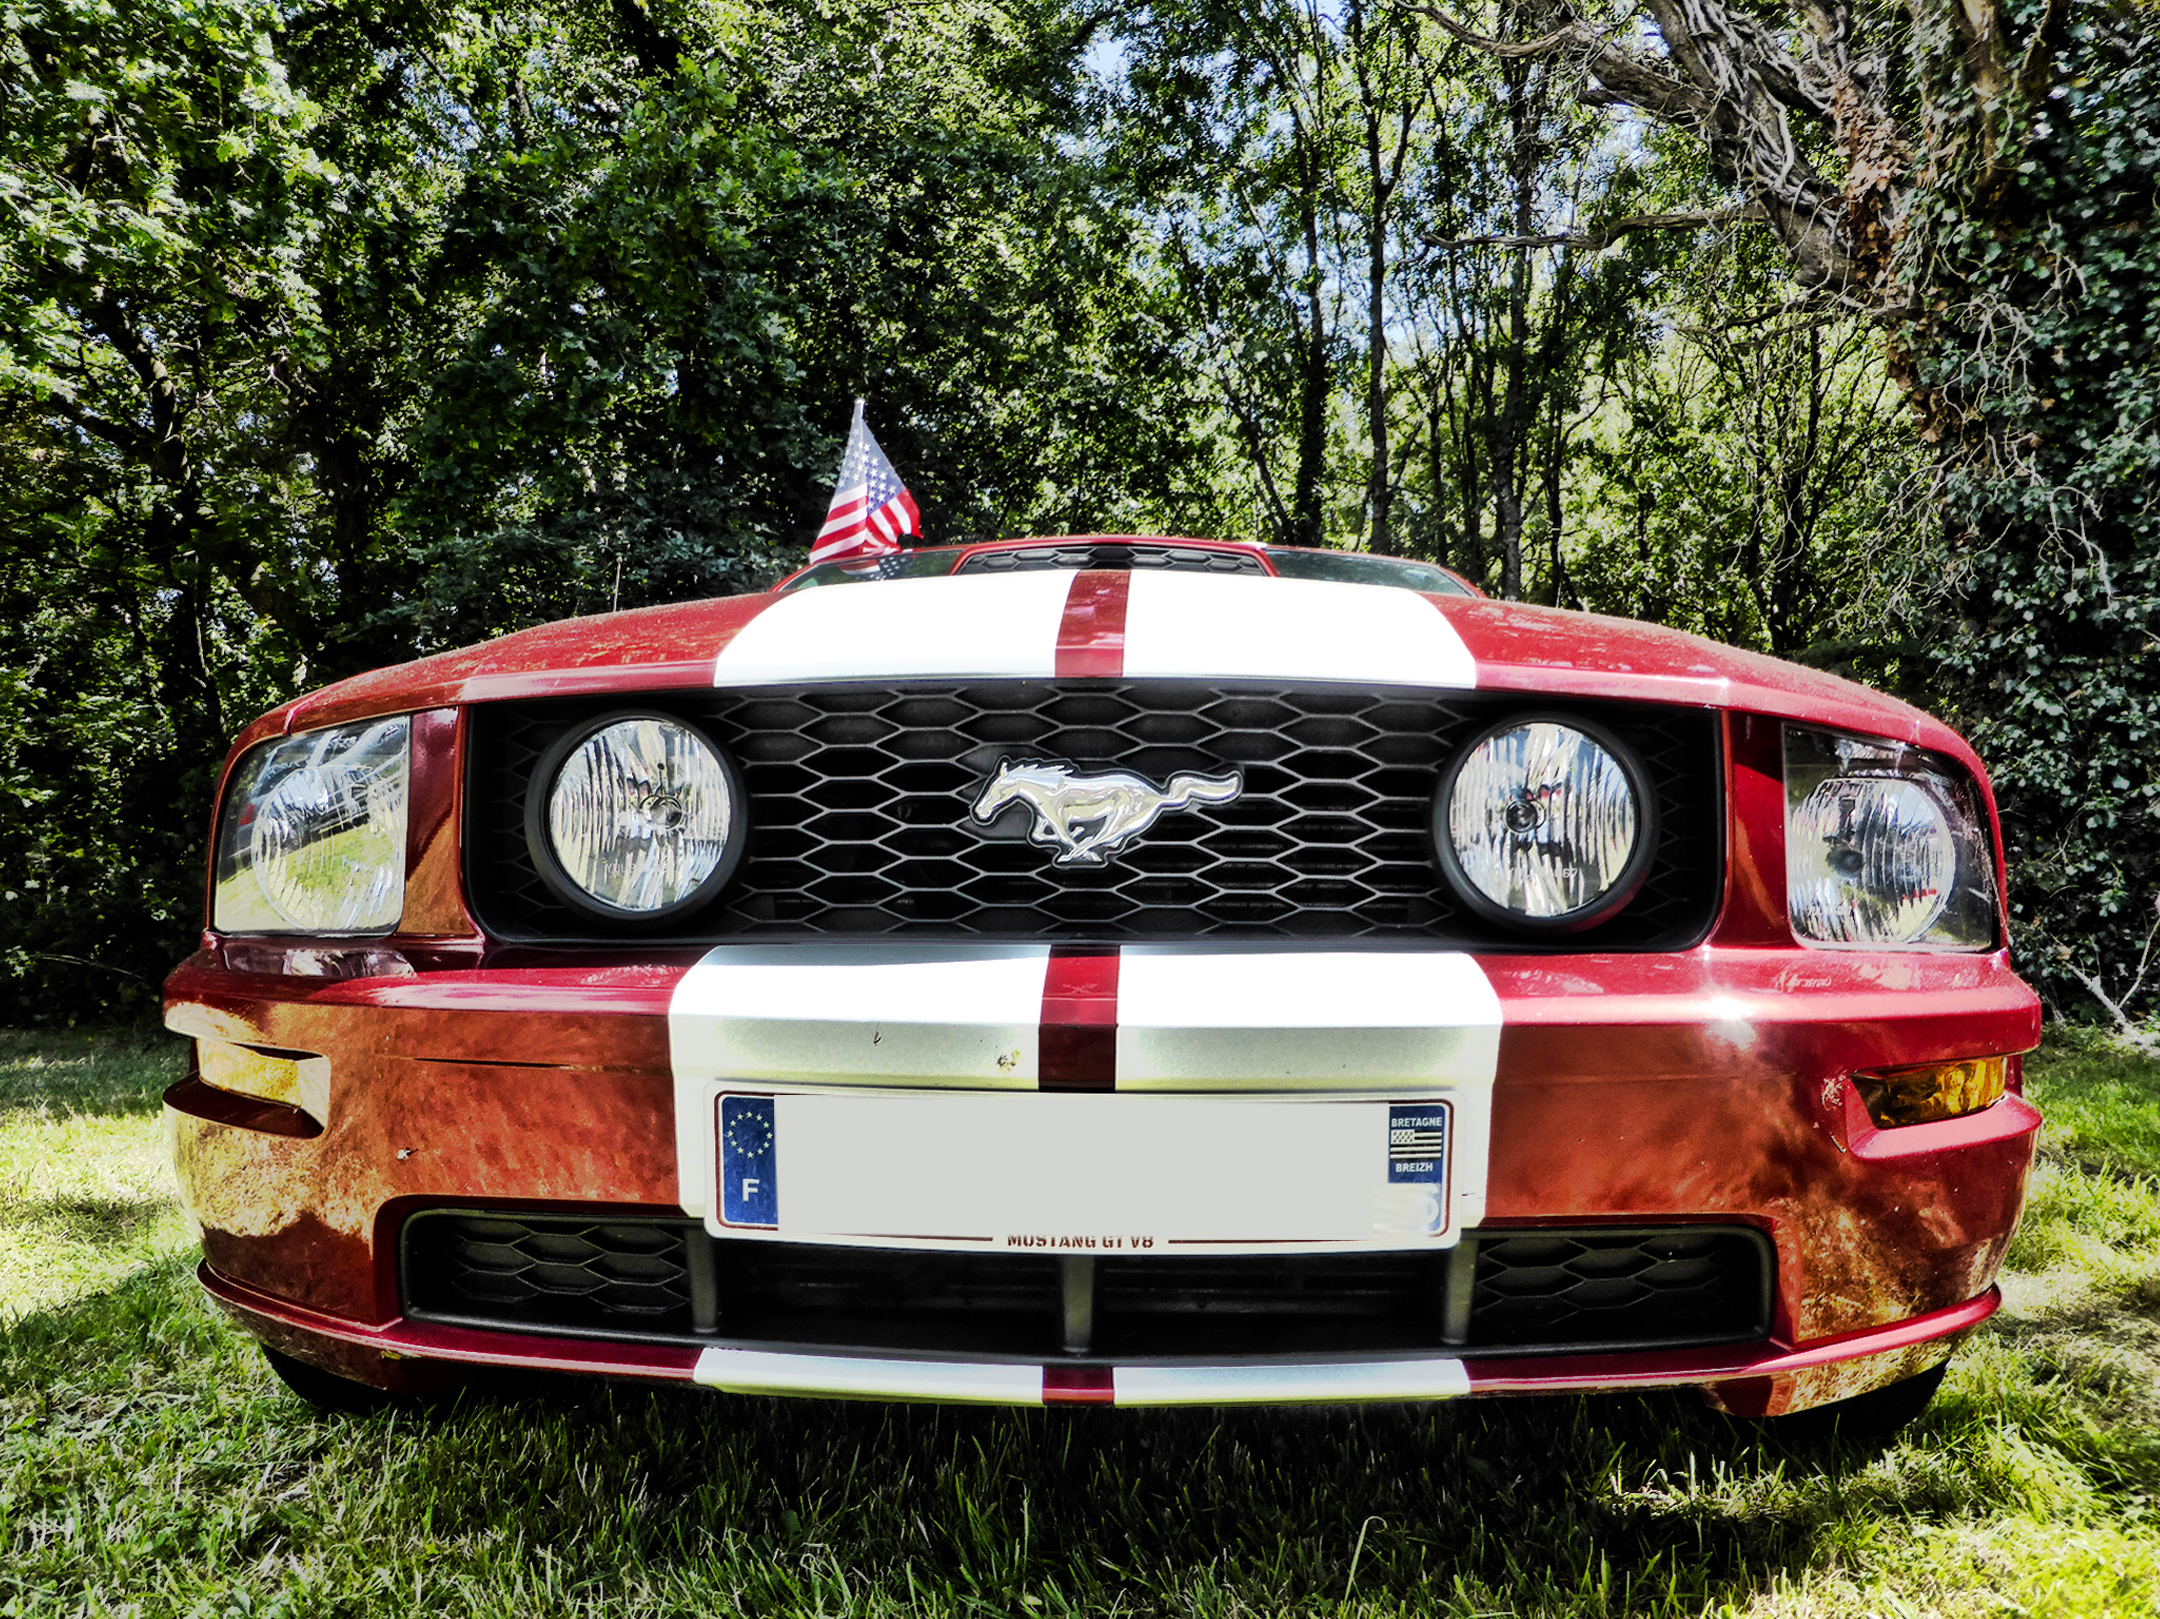 Ford Mustang GT V8 - 2005 - front - US Cars and Bikes 2017 - Photo by ELJ DESIGNMOTEUR